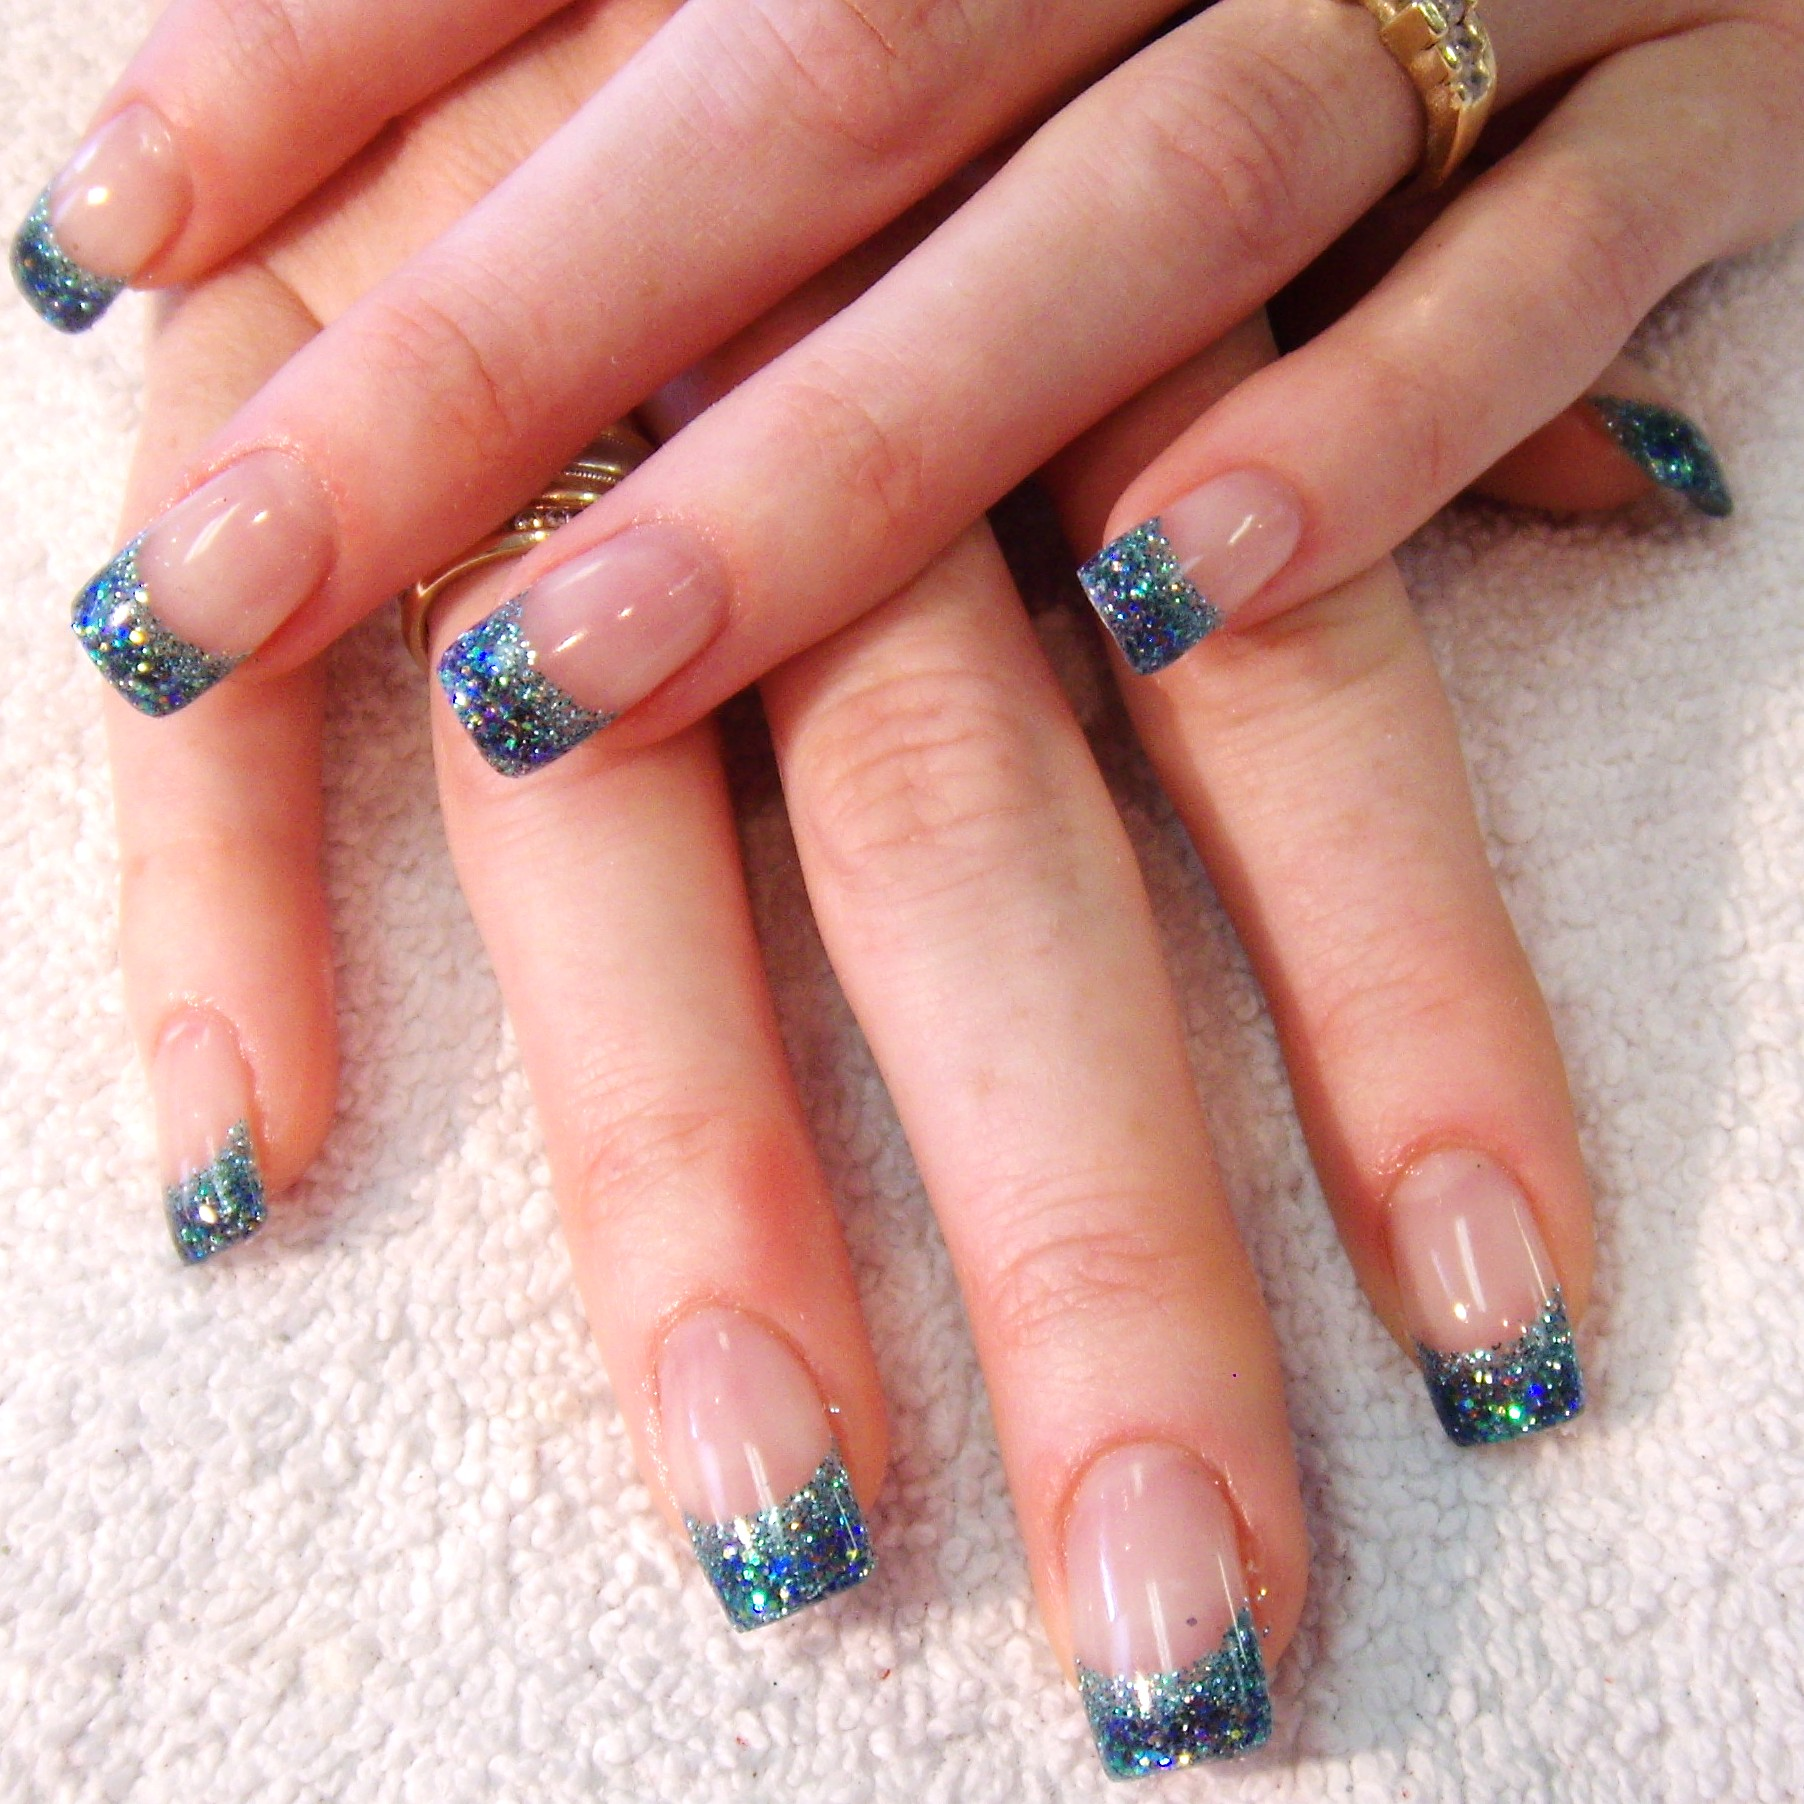 Gel nail designs nail designs 2014 tumblr step by step for short gel nail designs nail designs 2014 tumblr step by step for short nails with rhinestones with bows tumblr acrylic summber ideas prinsesfo Images